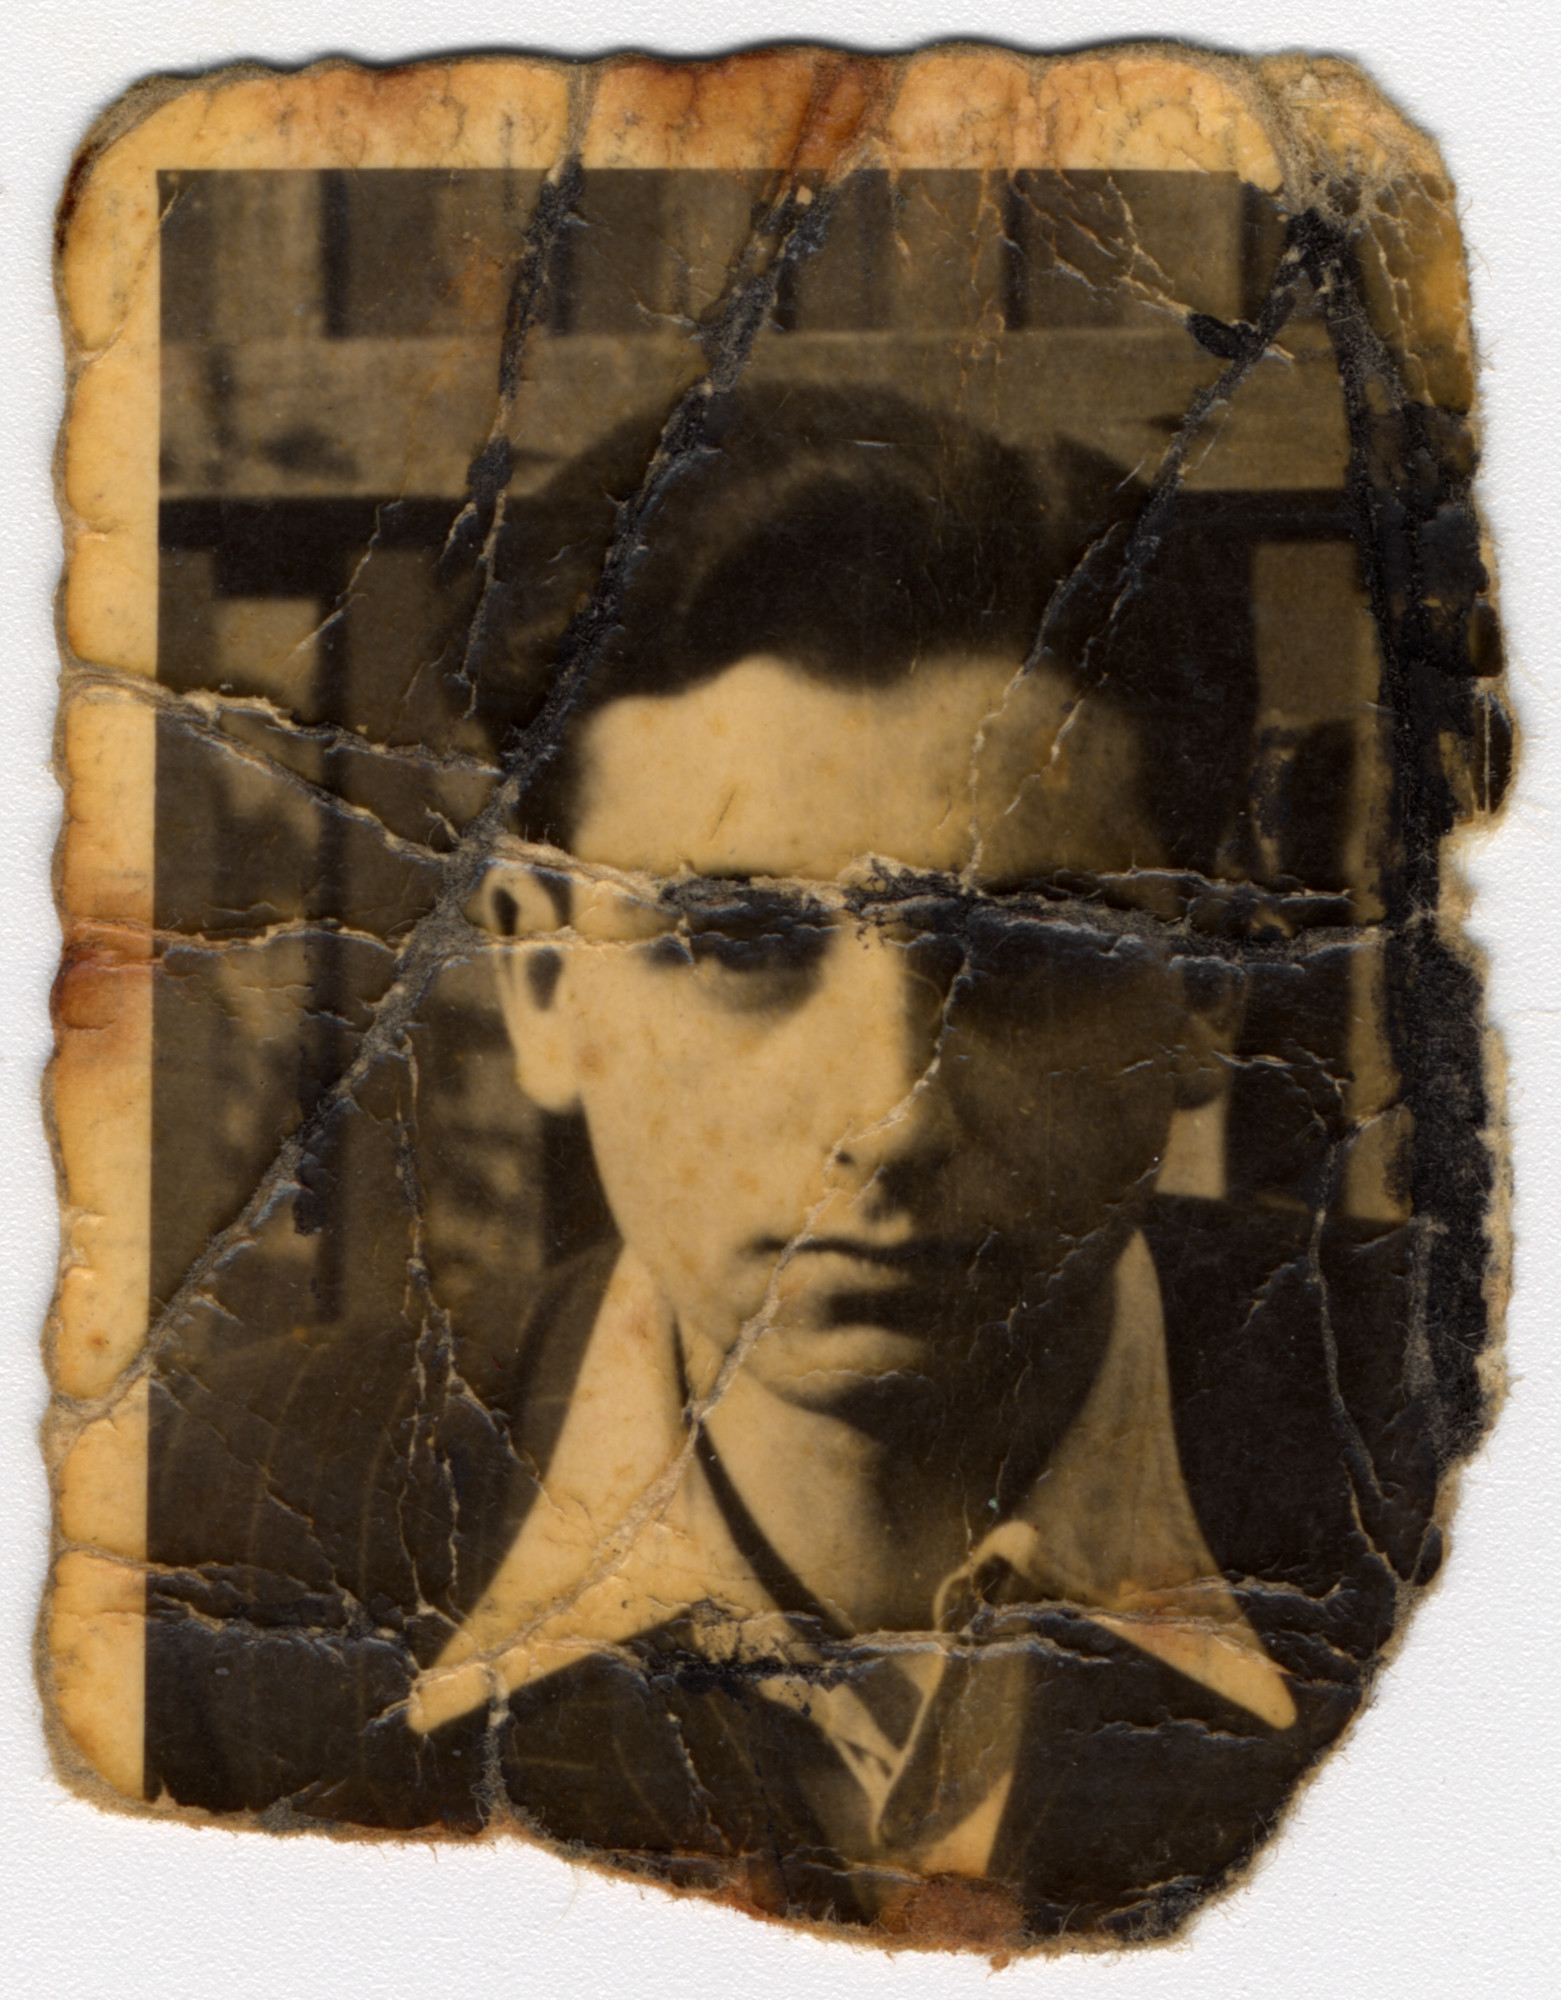 """Close-up portrait of a young man in the Bedzin ghetto.   Pictured is Alex Lieberman, donor's brother-in-law.  The portrait was found in """"Kanada"""" section in Birkenau in 1944 and brought to his mother, Rosa Lieberman.  Rosa hid this photograph in her mouth through every selection and search during her imprisonment in Birkenau, and she later carried it with her on death marches to Ravensbrueck and Neustadt-Gleve."""